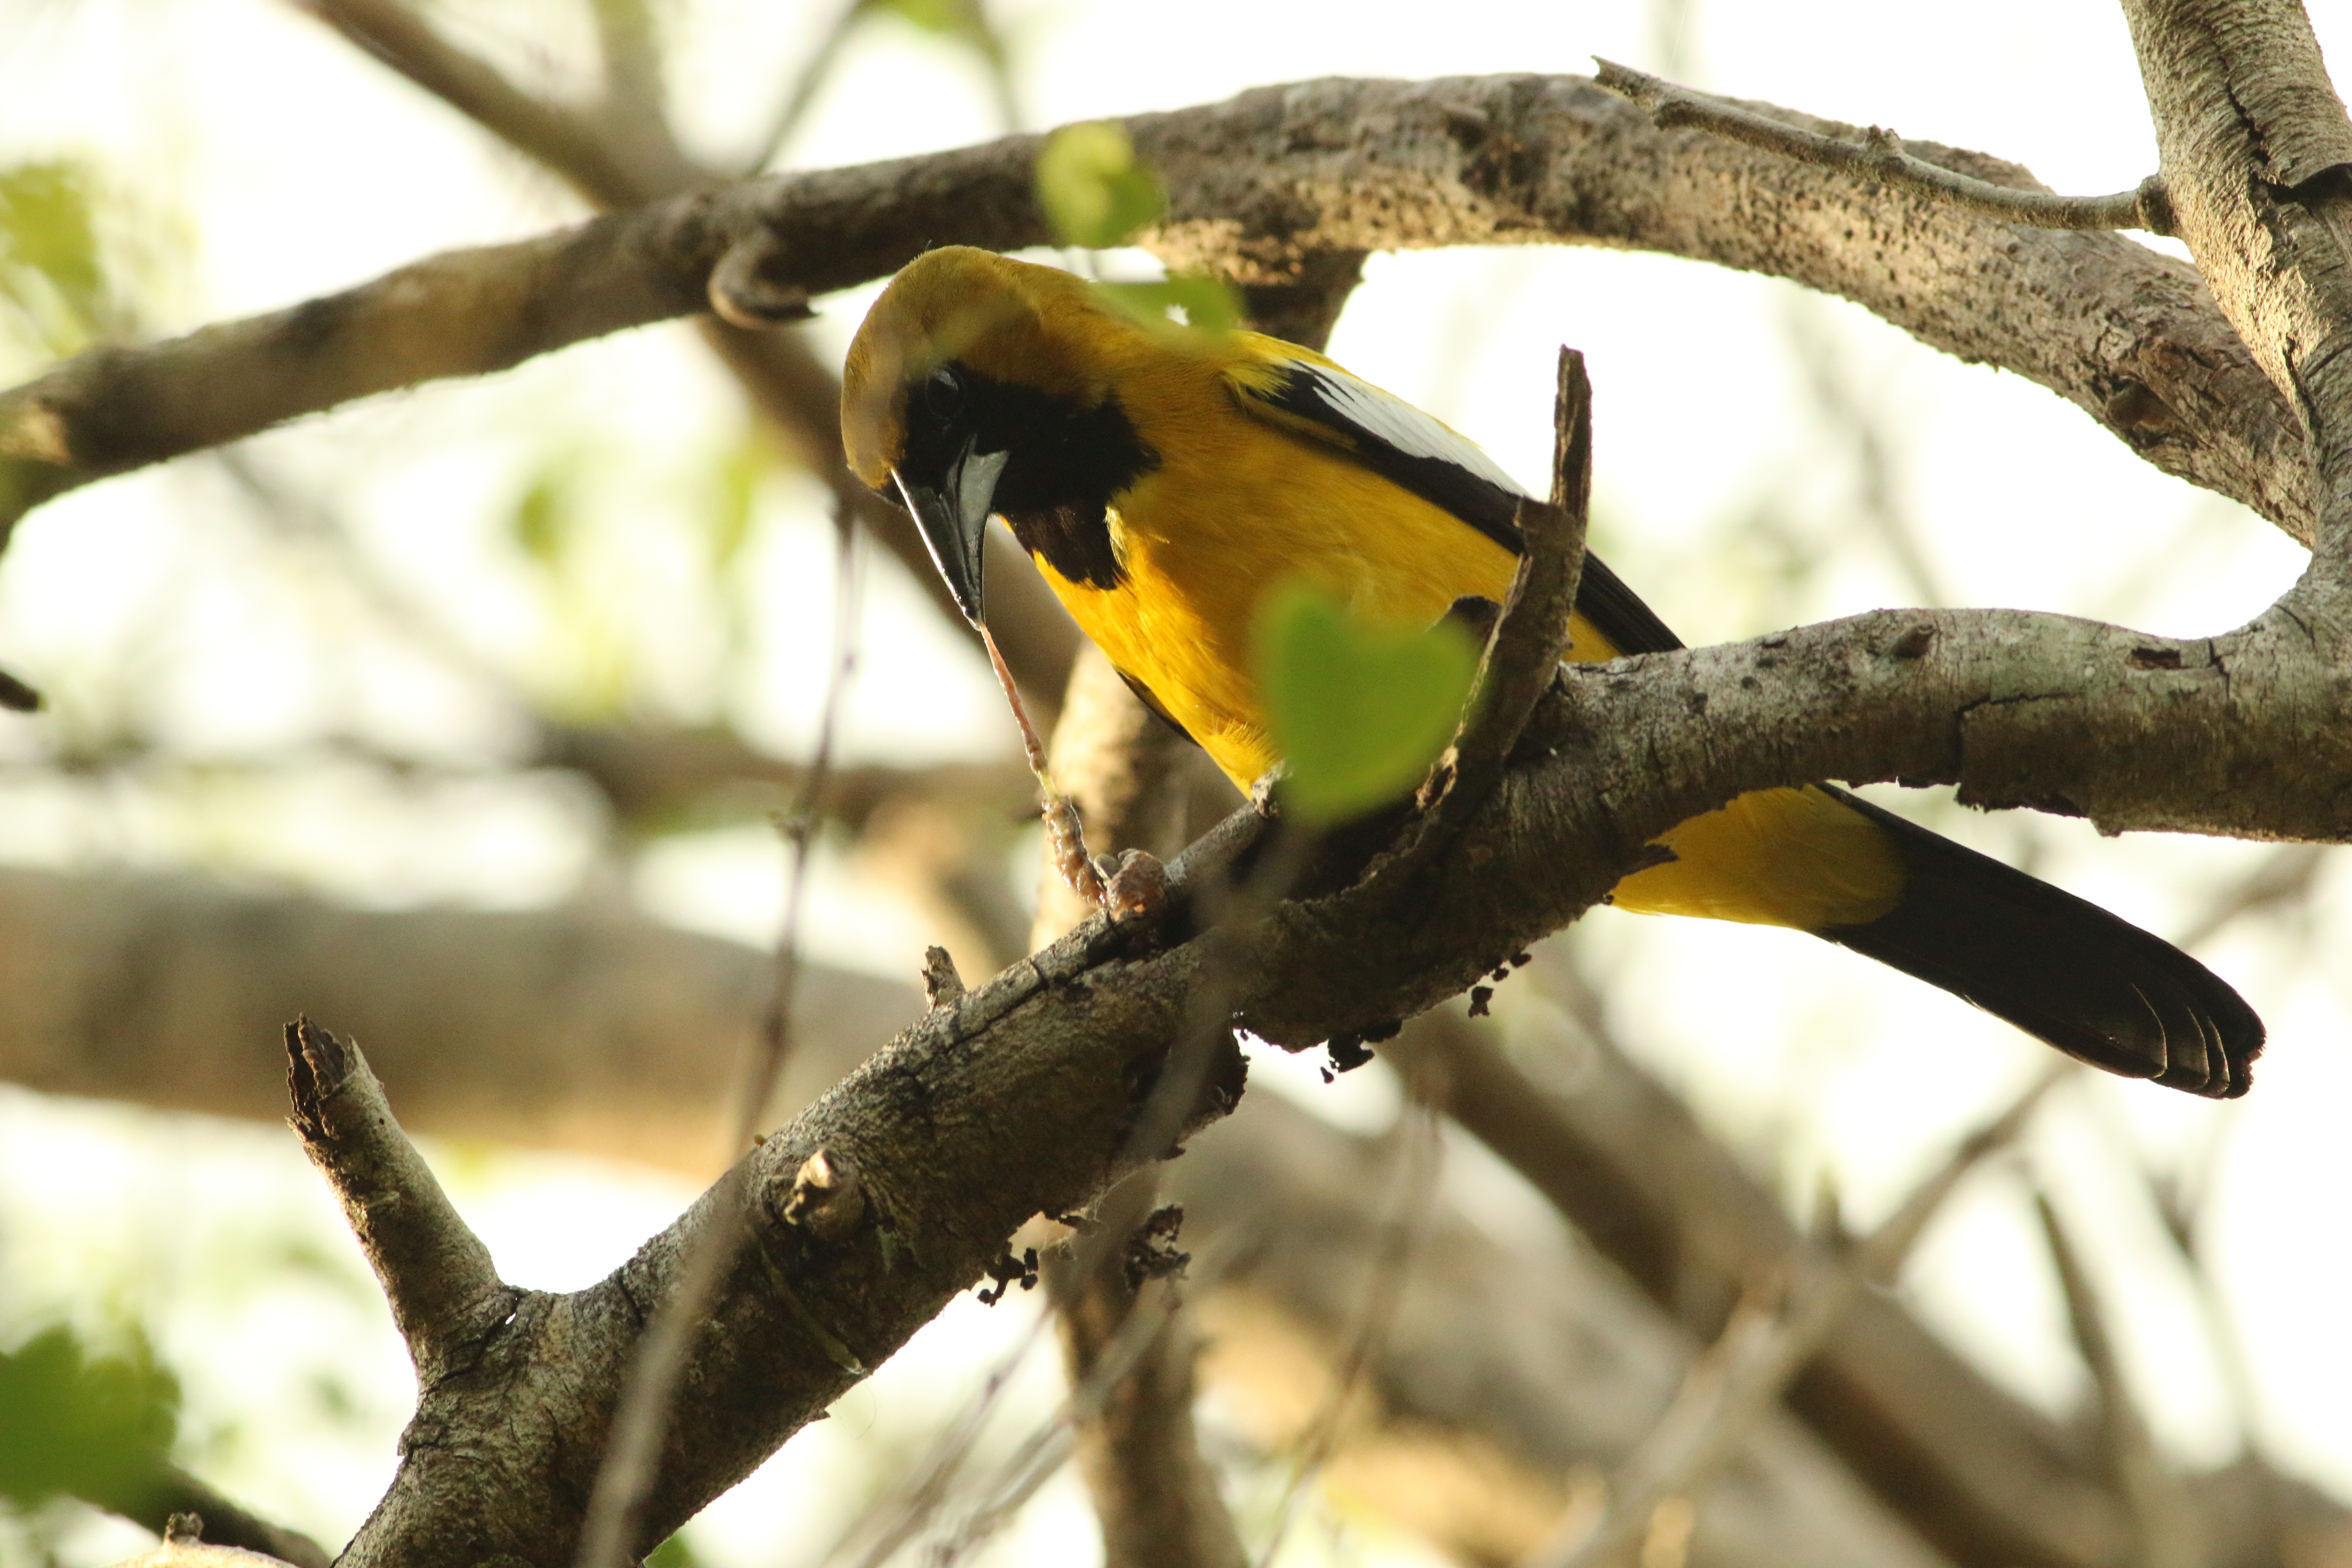 A Jamaican oriole perched on a branch